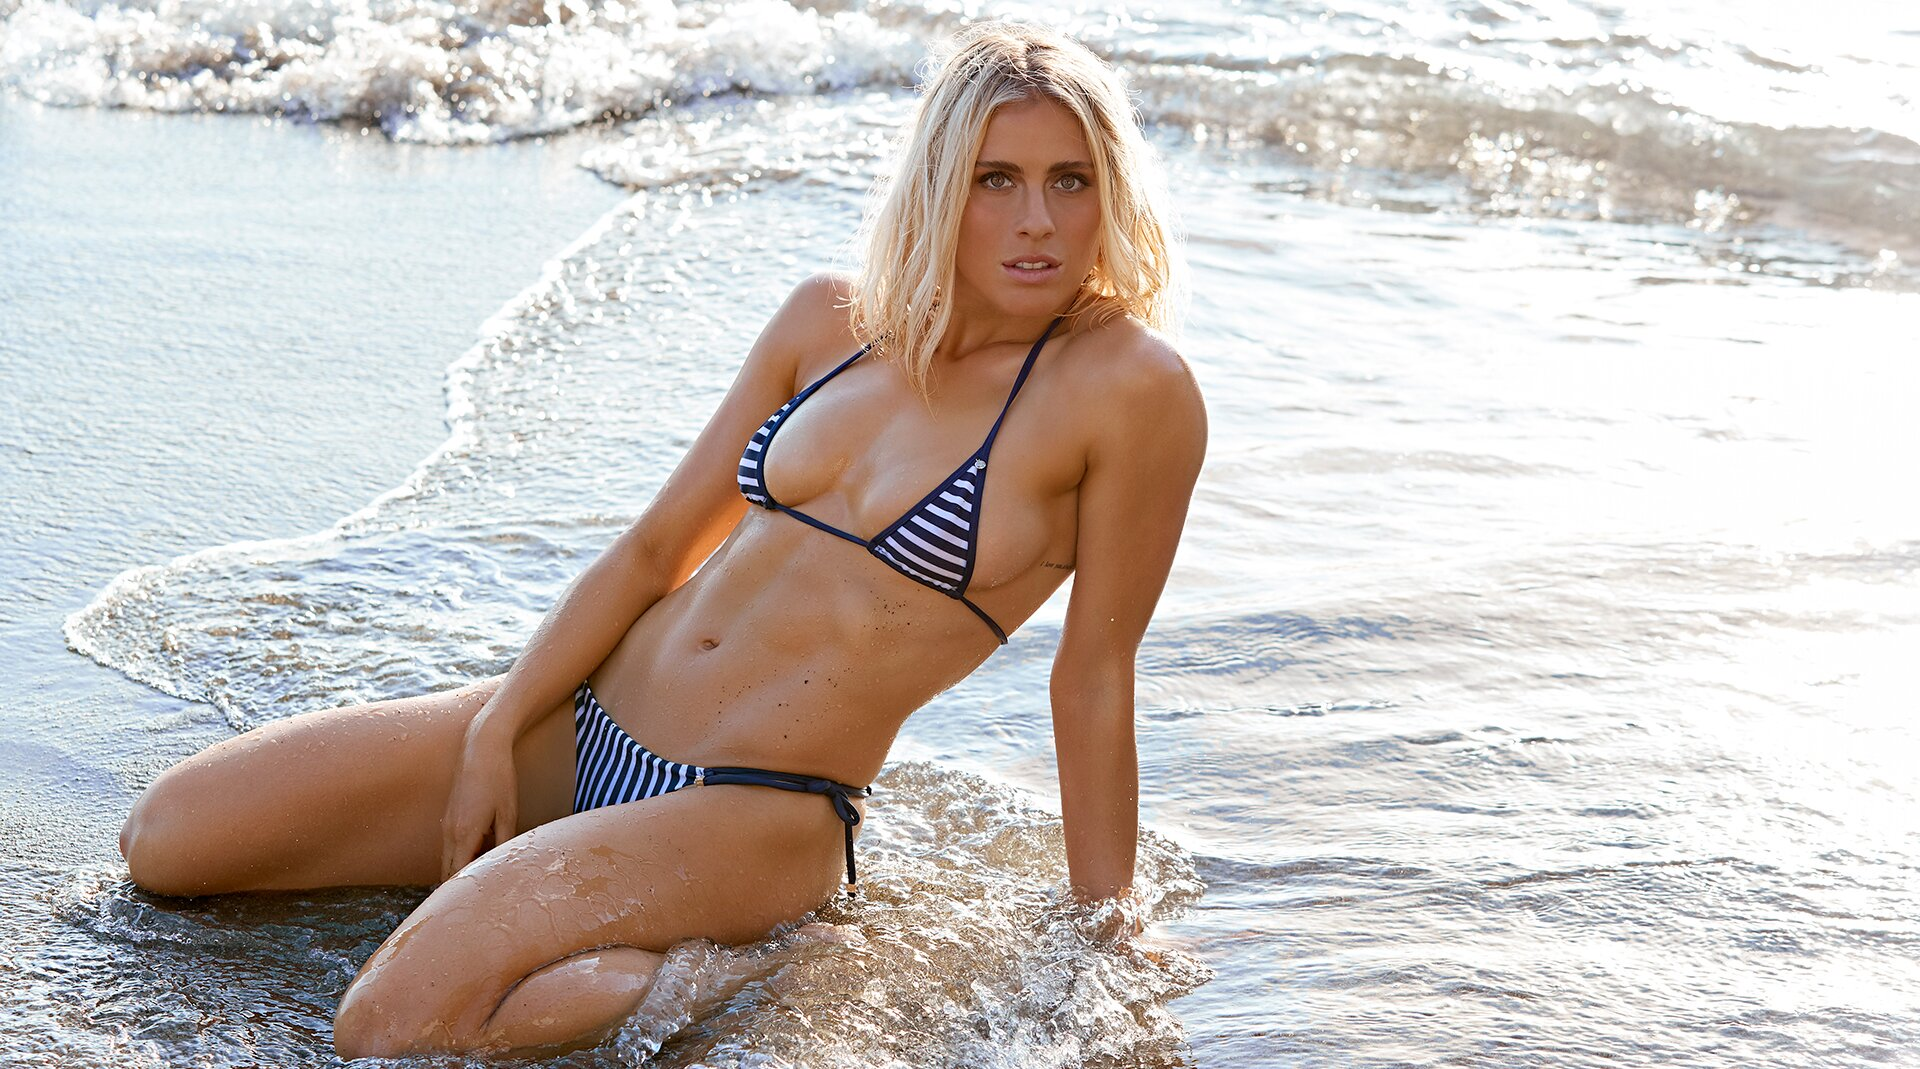 USWNT's Abby Dahlkemper on poses for SI Swimsuit | SI com